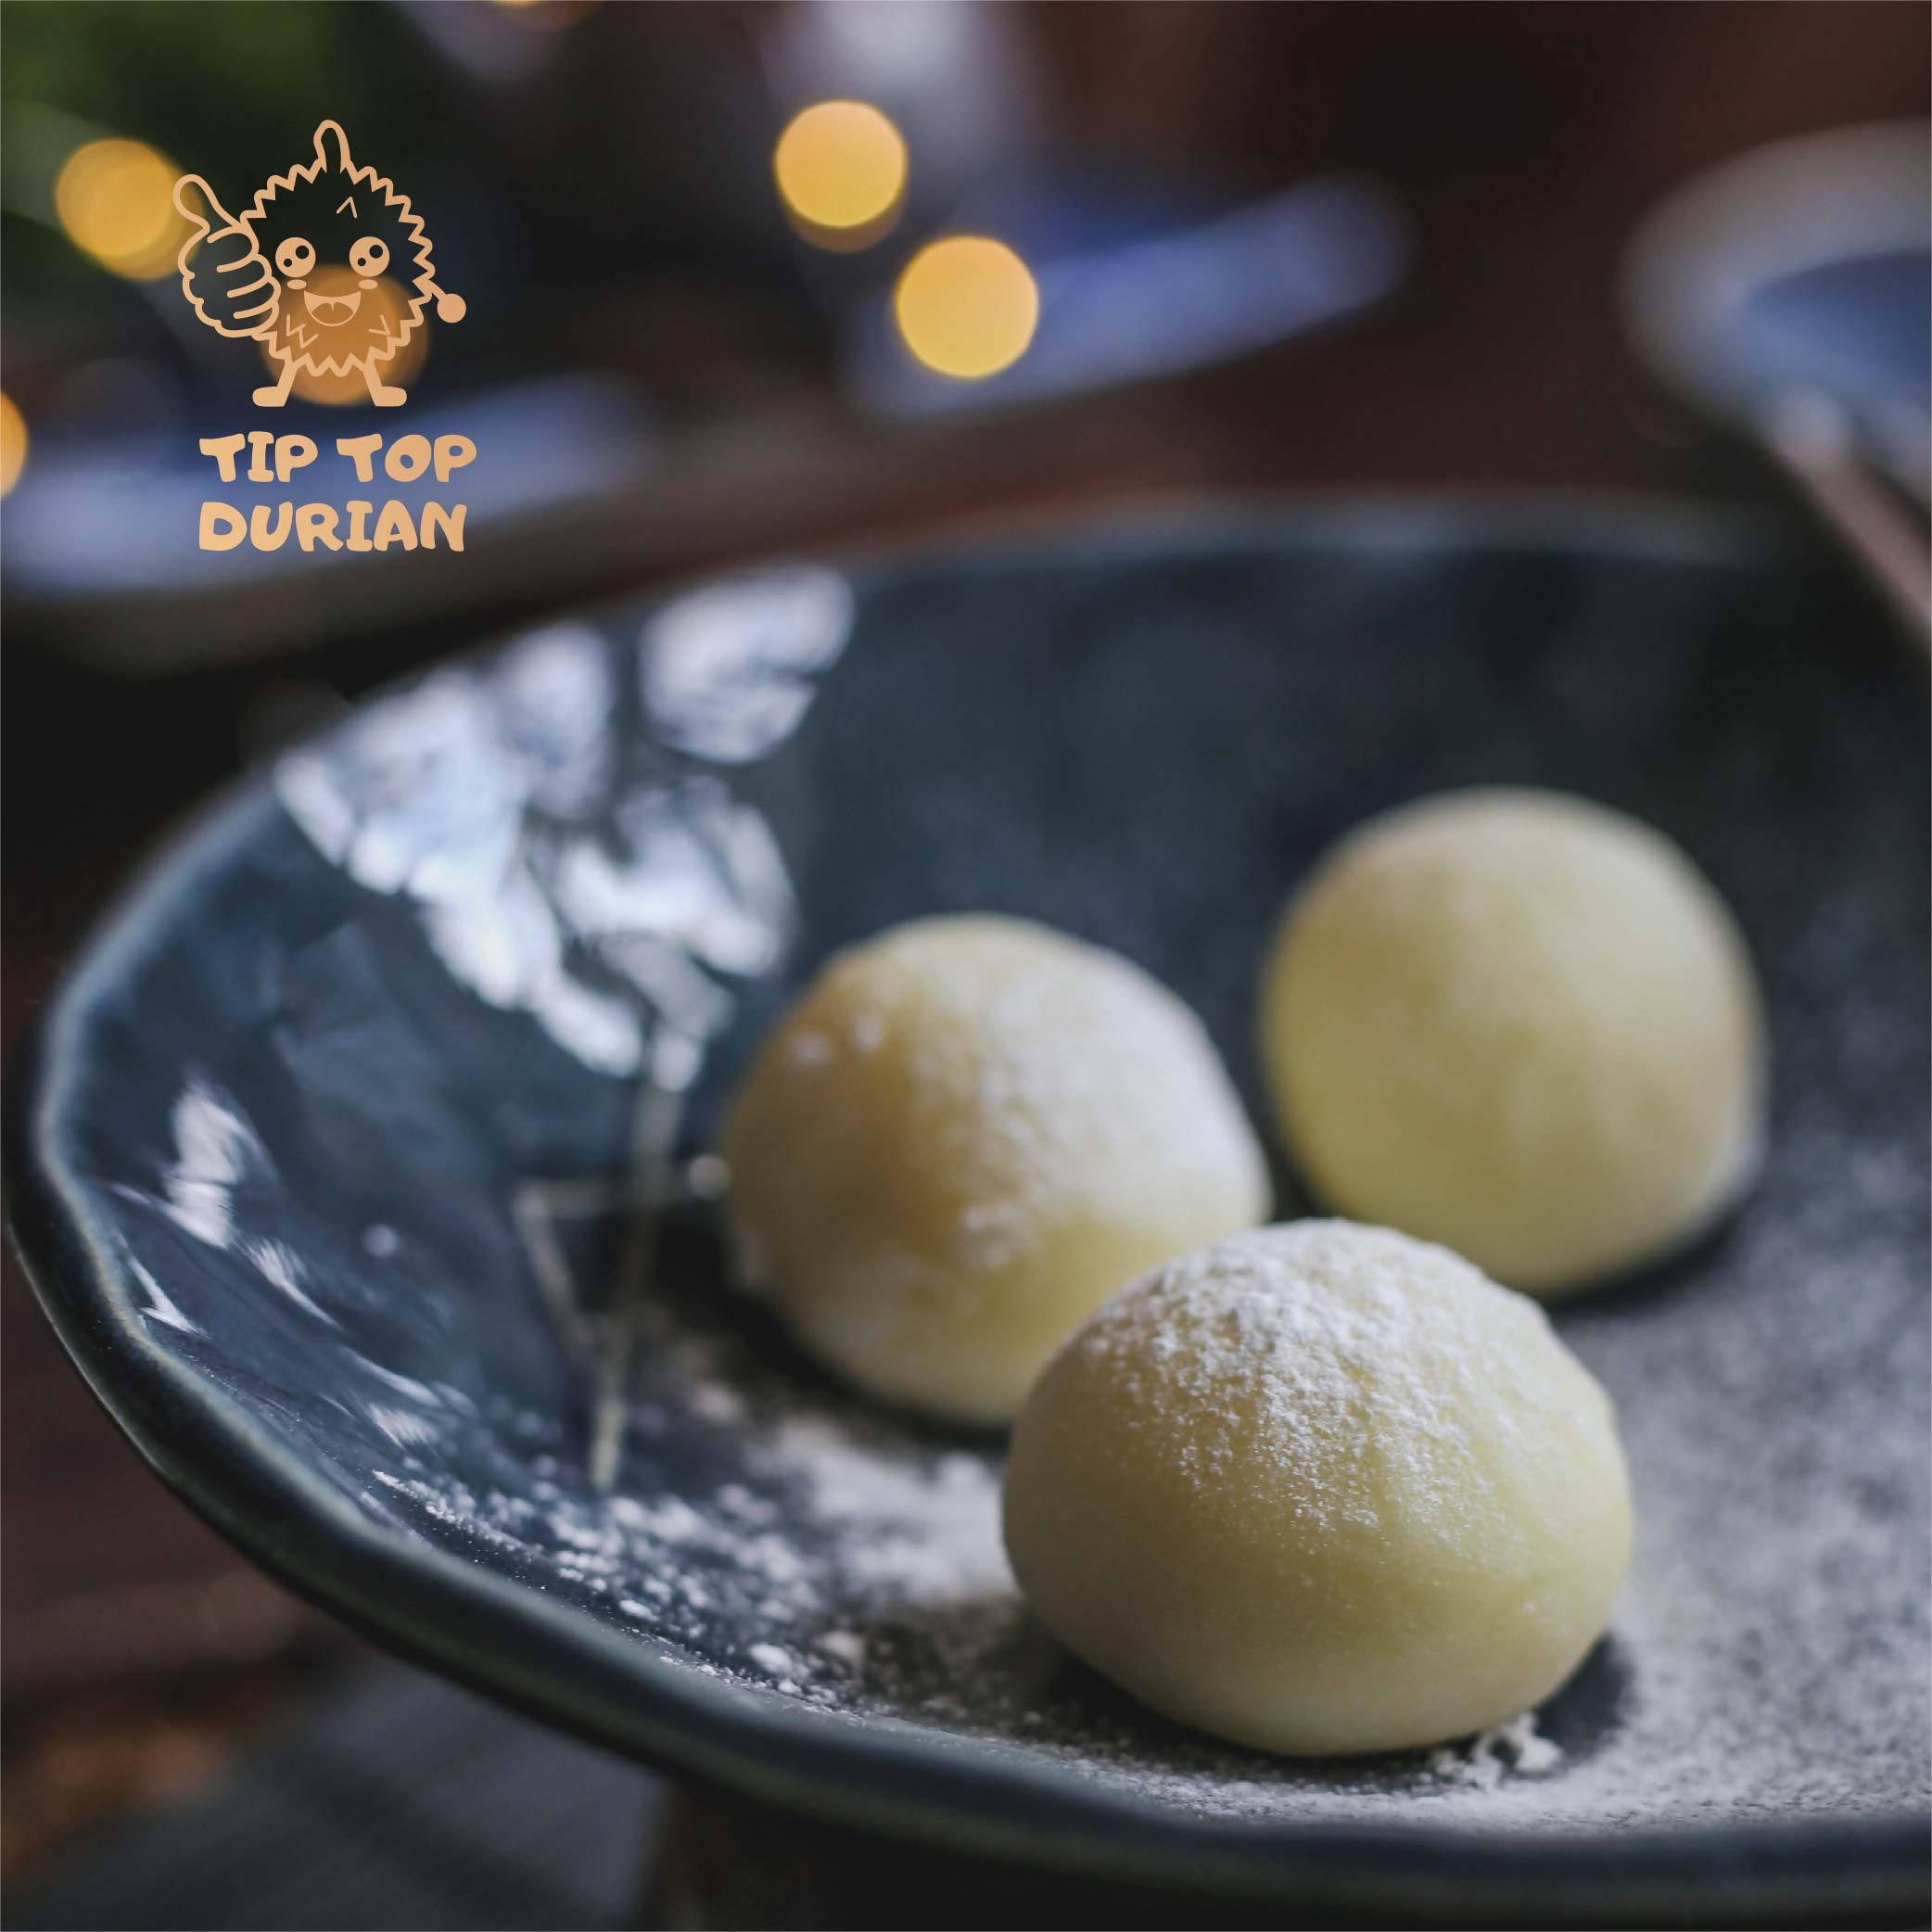 100% Real D24 Durian Mochi